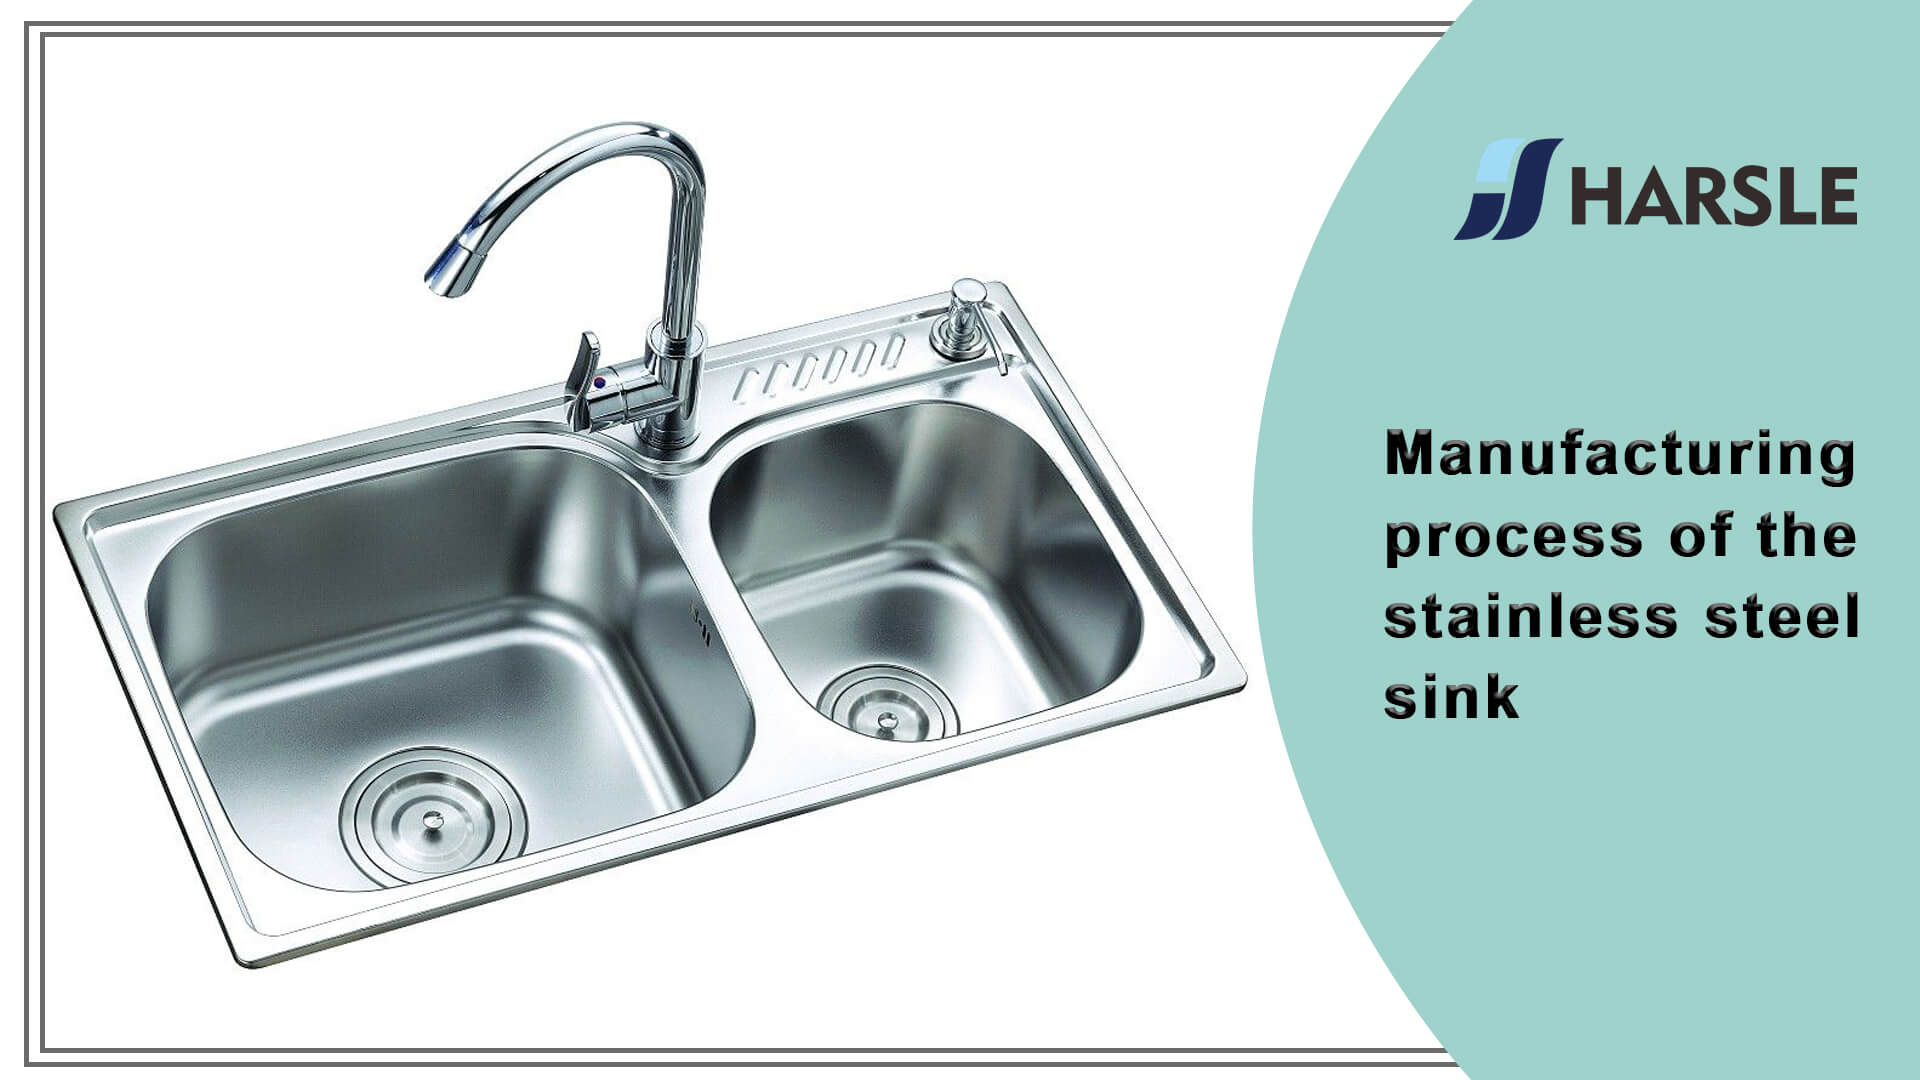 Manufacturing process of the stainless steel sink